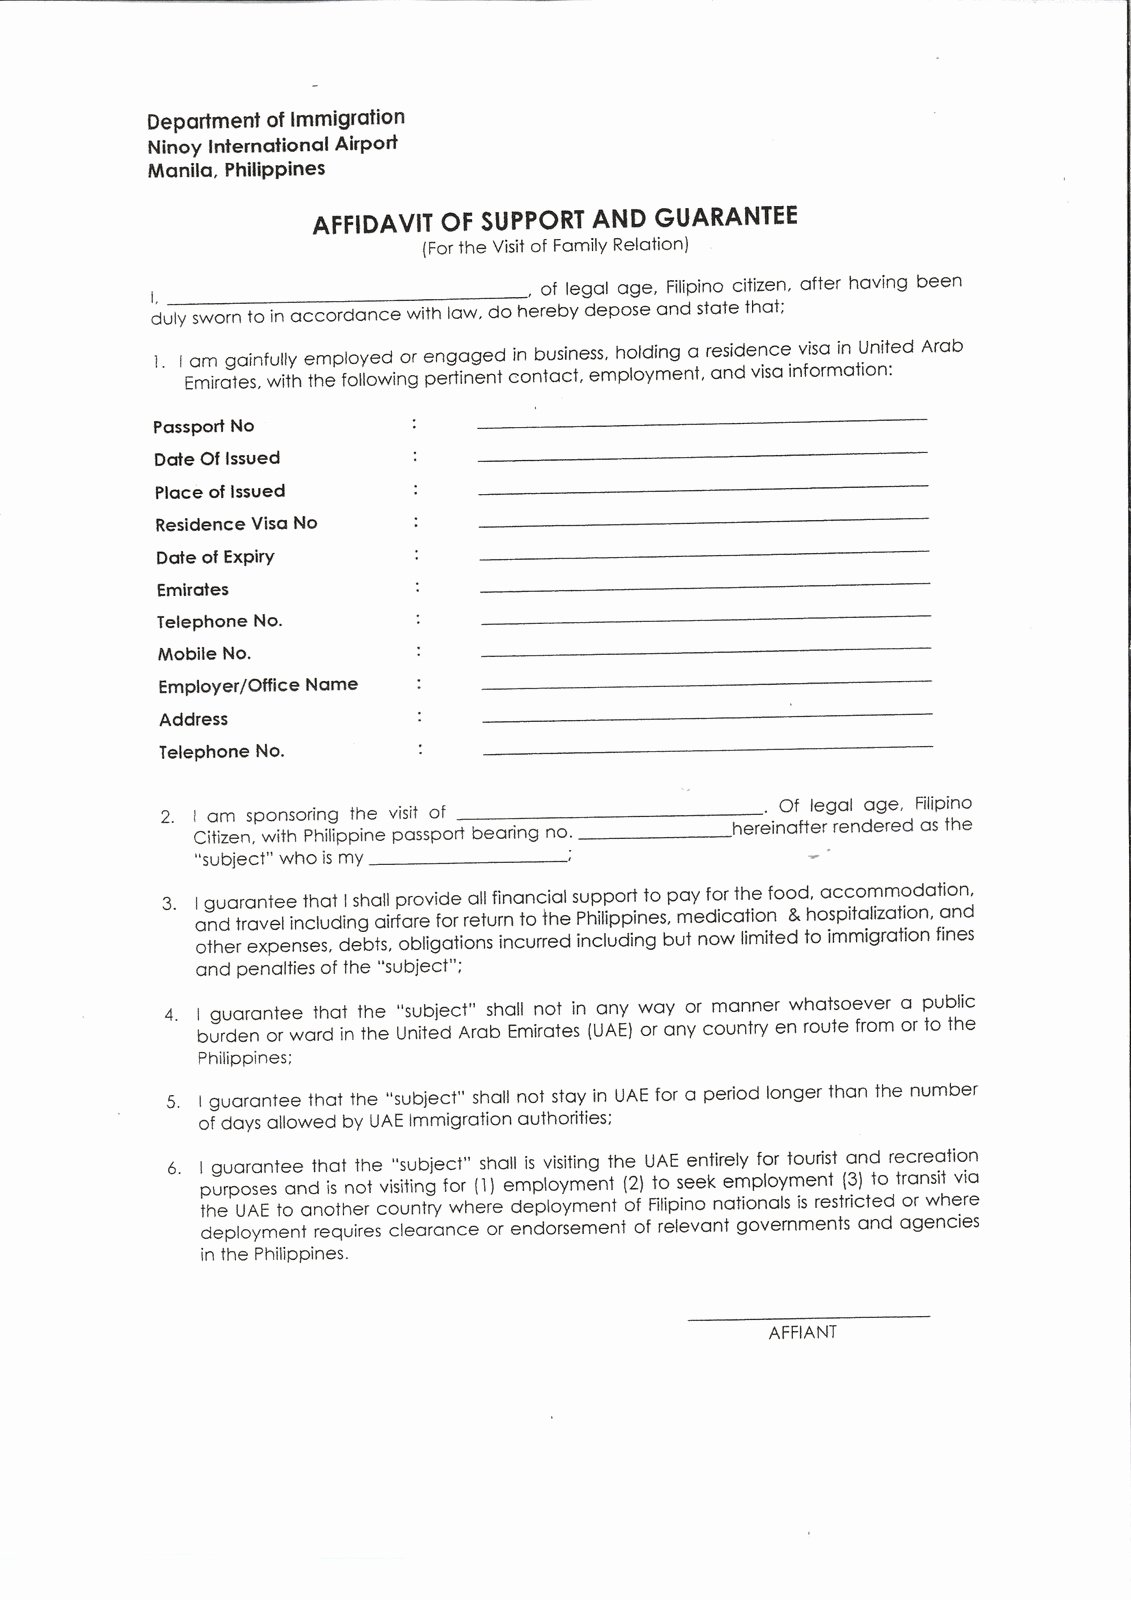 Letter Of Affidavit Of Support Best Of Template Affidavit Support Affidavit Support